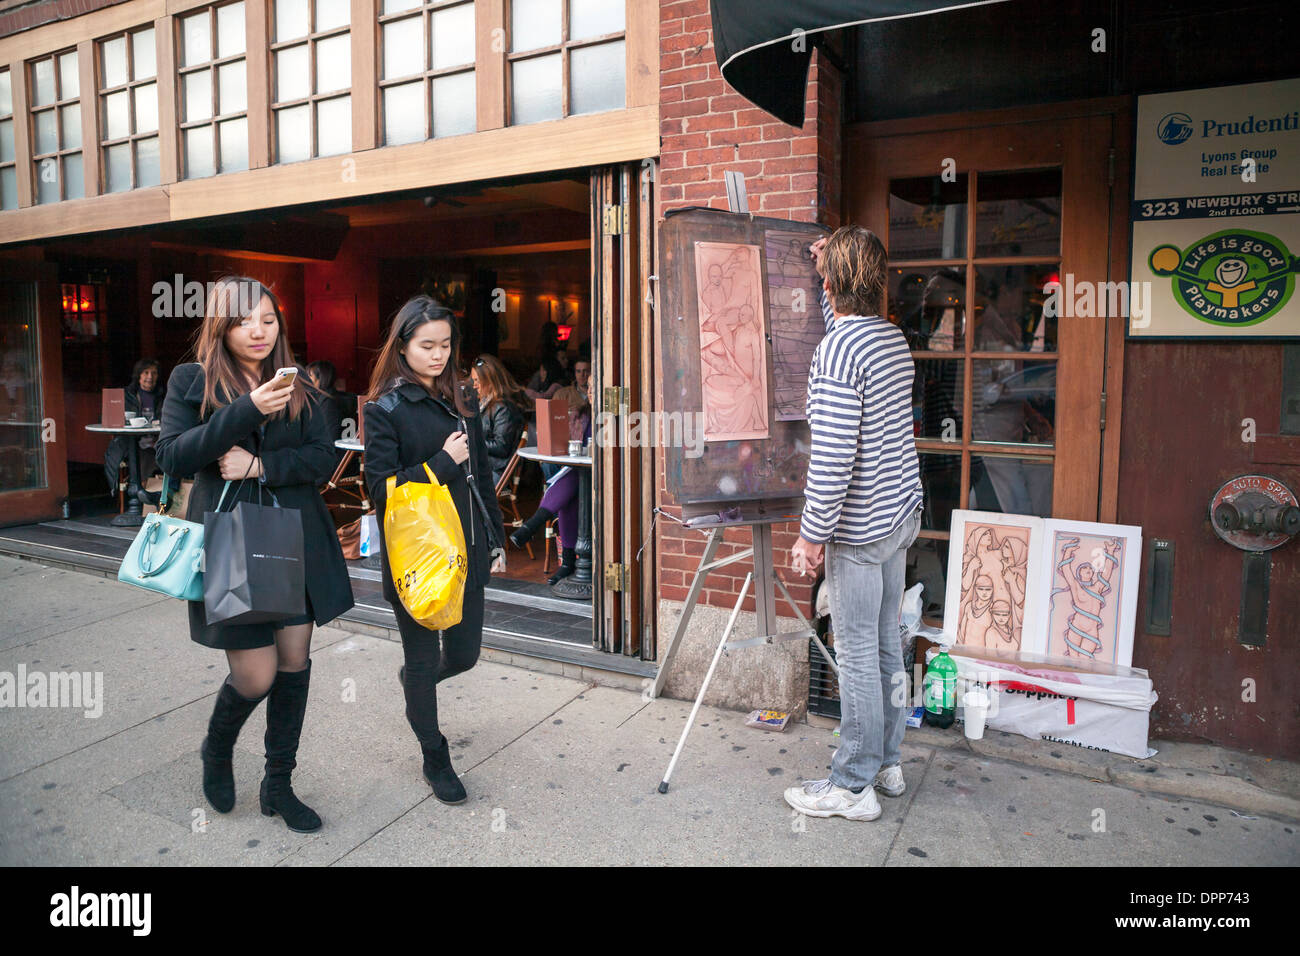 A man draws art on his easel on Newbury Street in Boston as two women pass by. - Stock Image